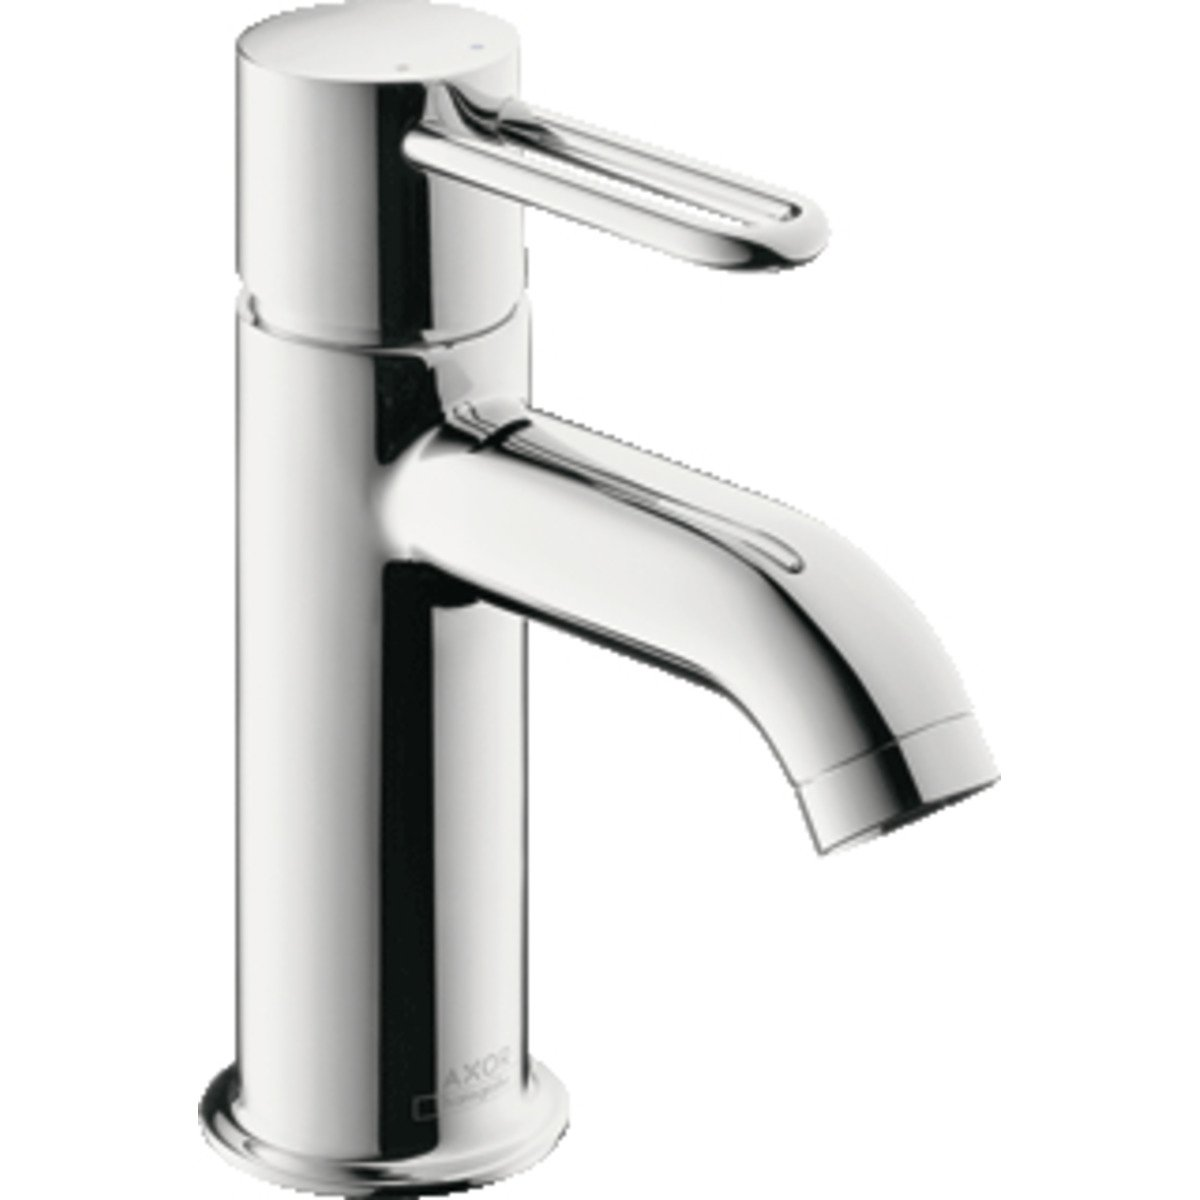 hansgrohe axor uno 2 robinet pour lavabo avec manette. Black Bedroom Furniture Sets. Home Design Ideas